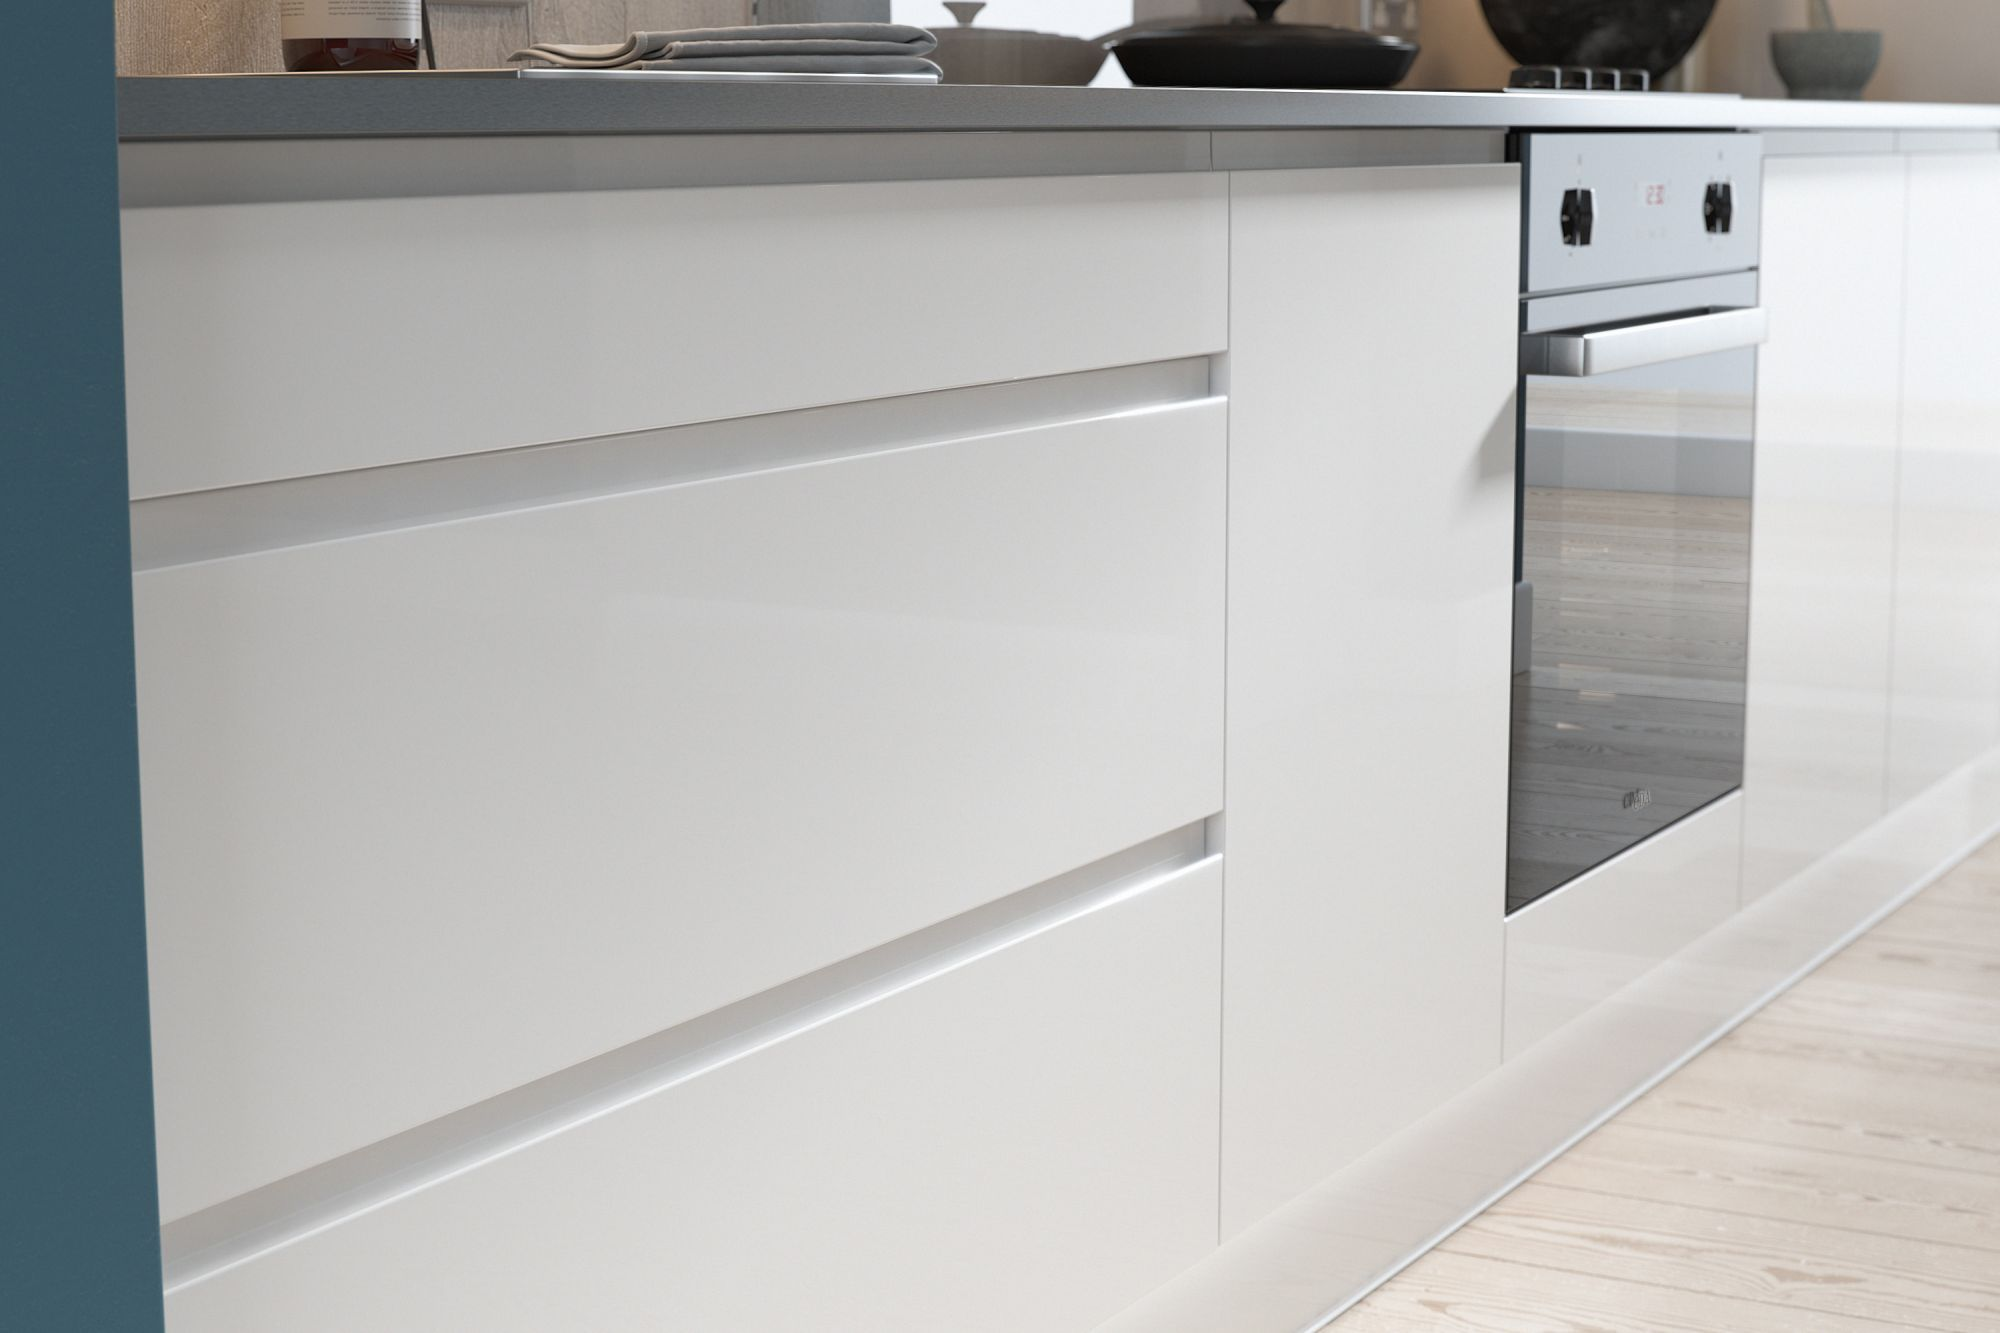 j pull kitchen in gloss white kitchen with images white gloss kitchen kitchen wren kitchen on j kitchen id=71869